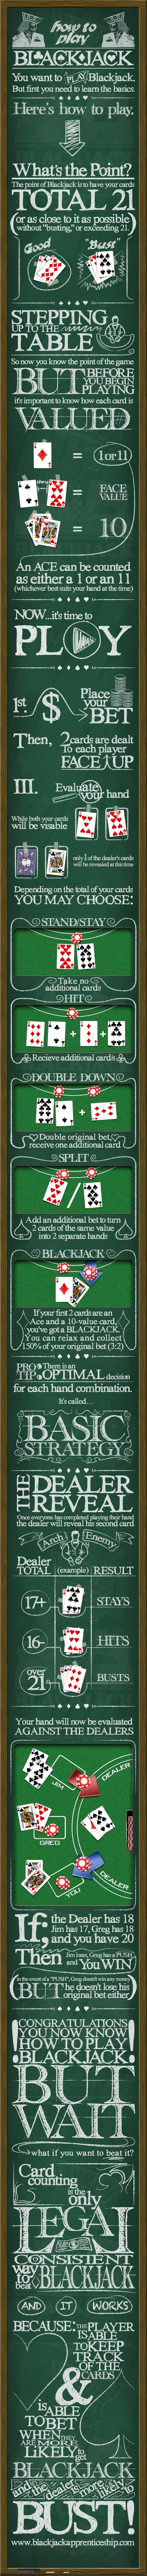 how to play and win black jack 50e5e25f06f20 - Start Winning Real Cash Prizes by Reading Our Beginner's Guide on How to Play Blackjack